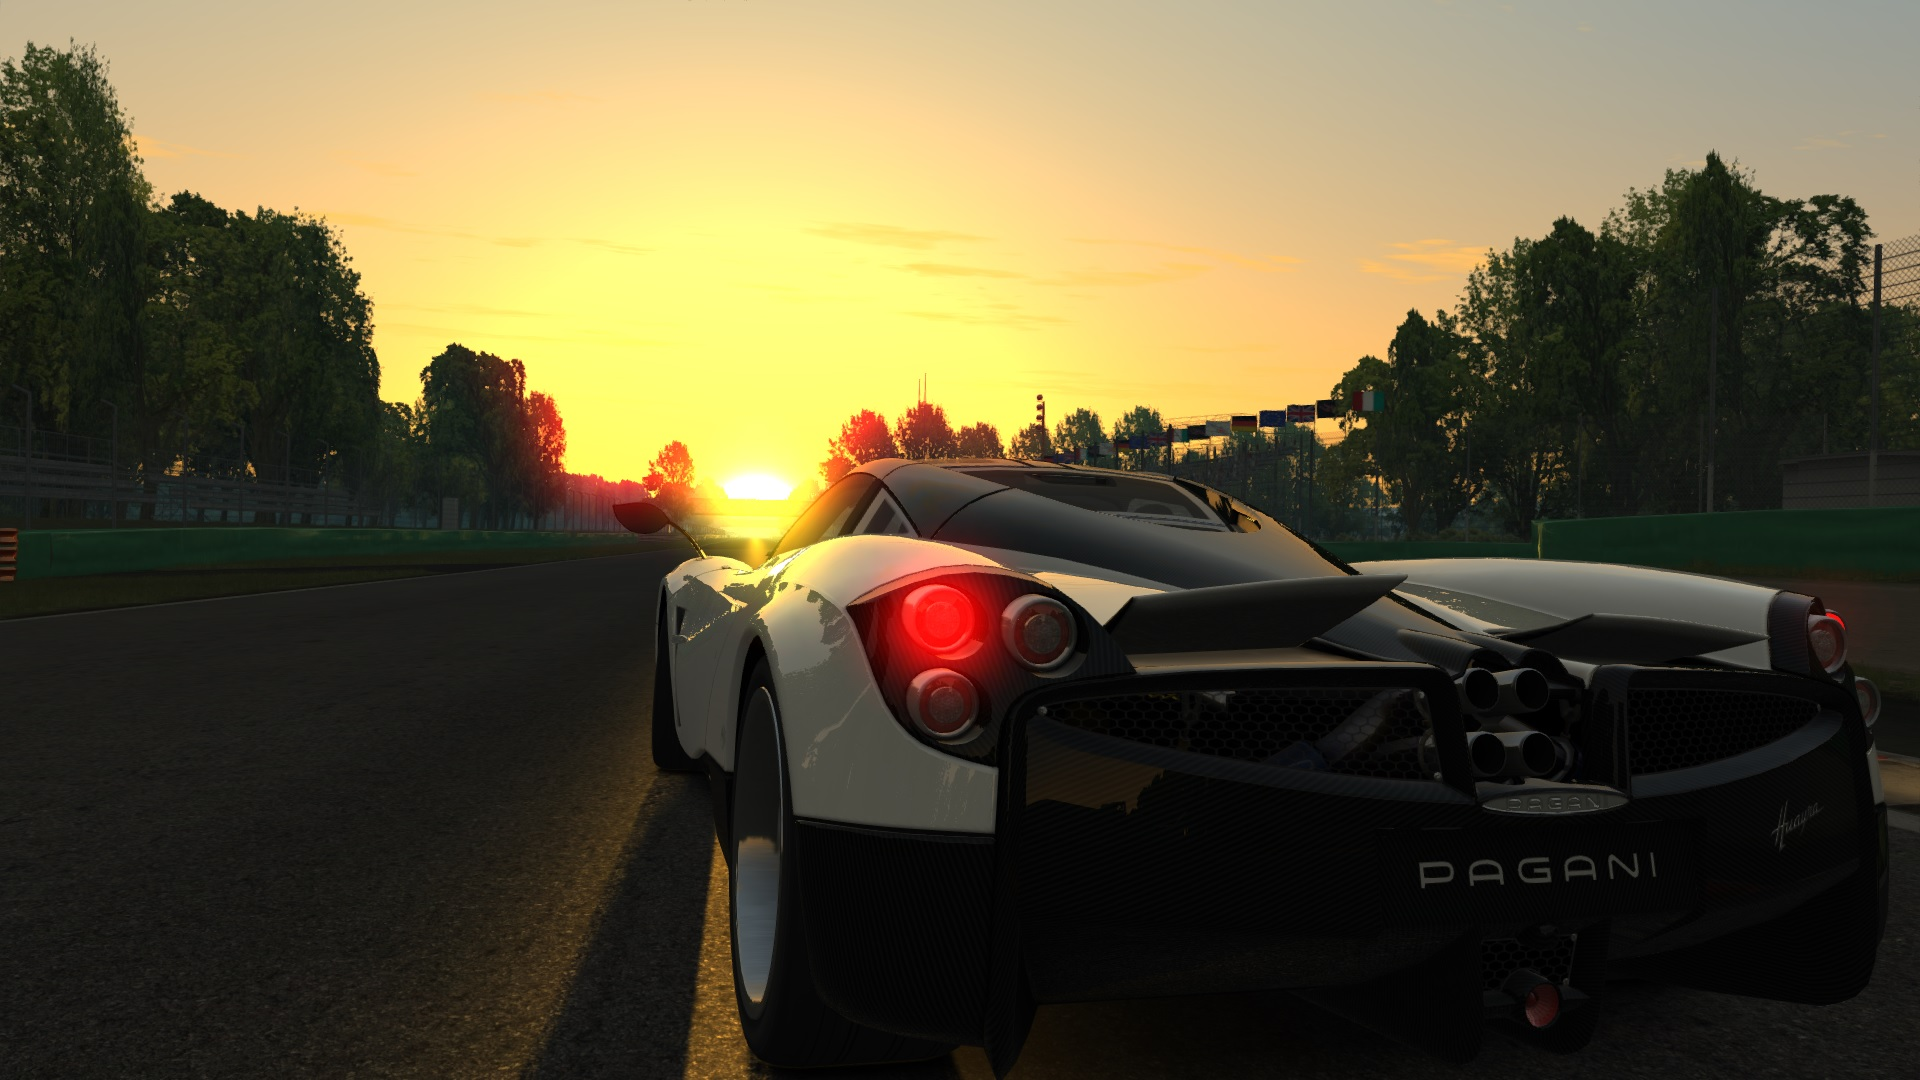 Huayra in sunset